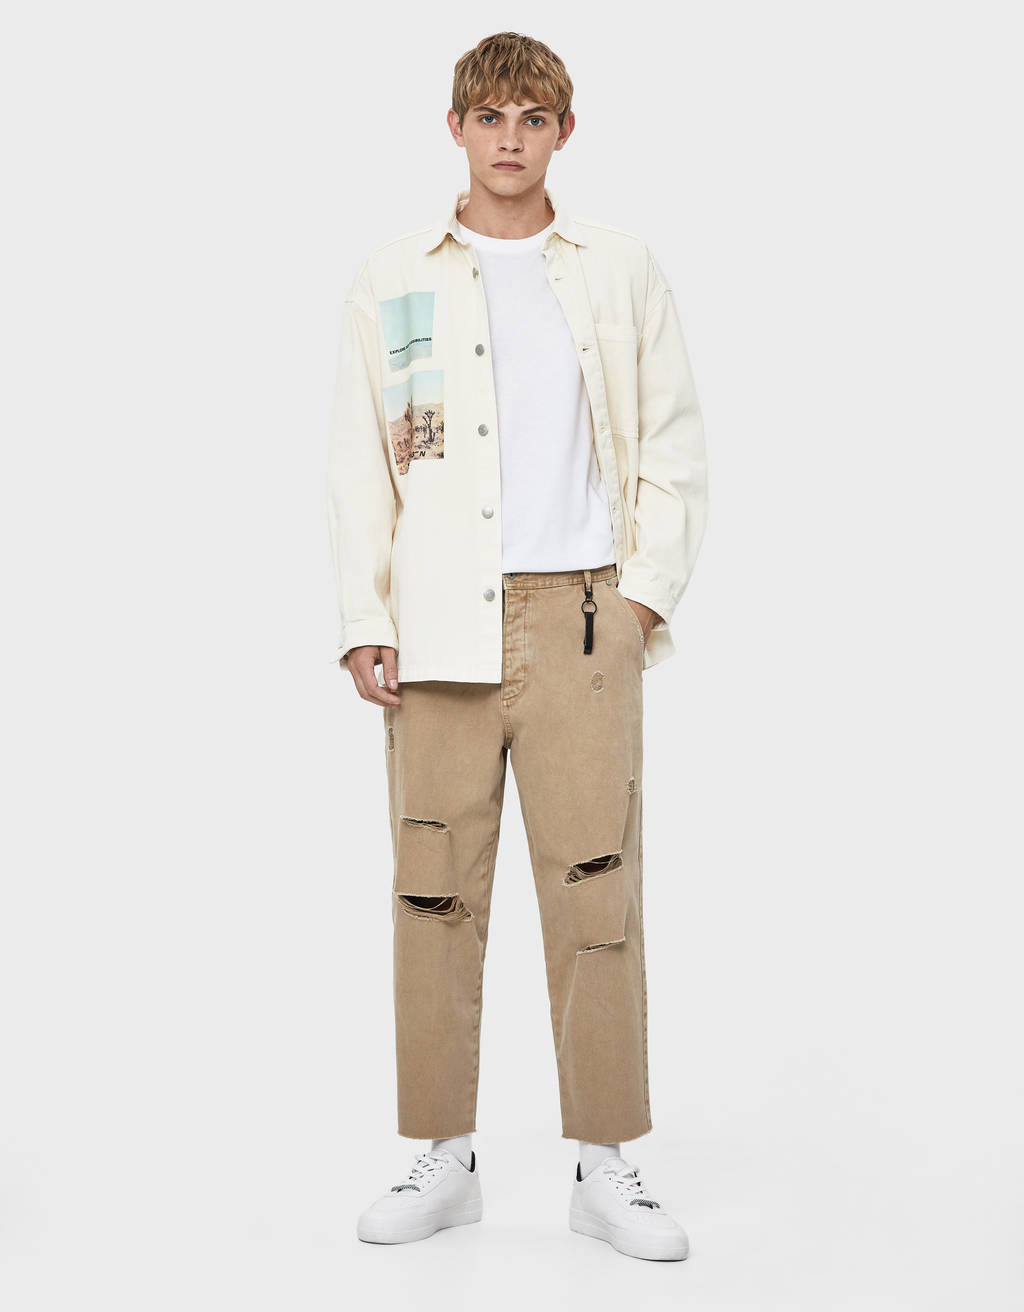 Loose fit trousers with rips